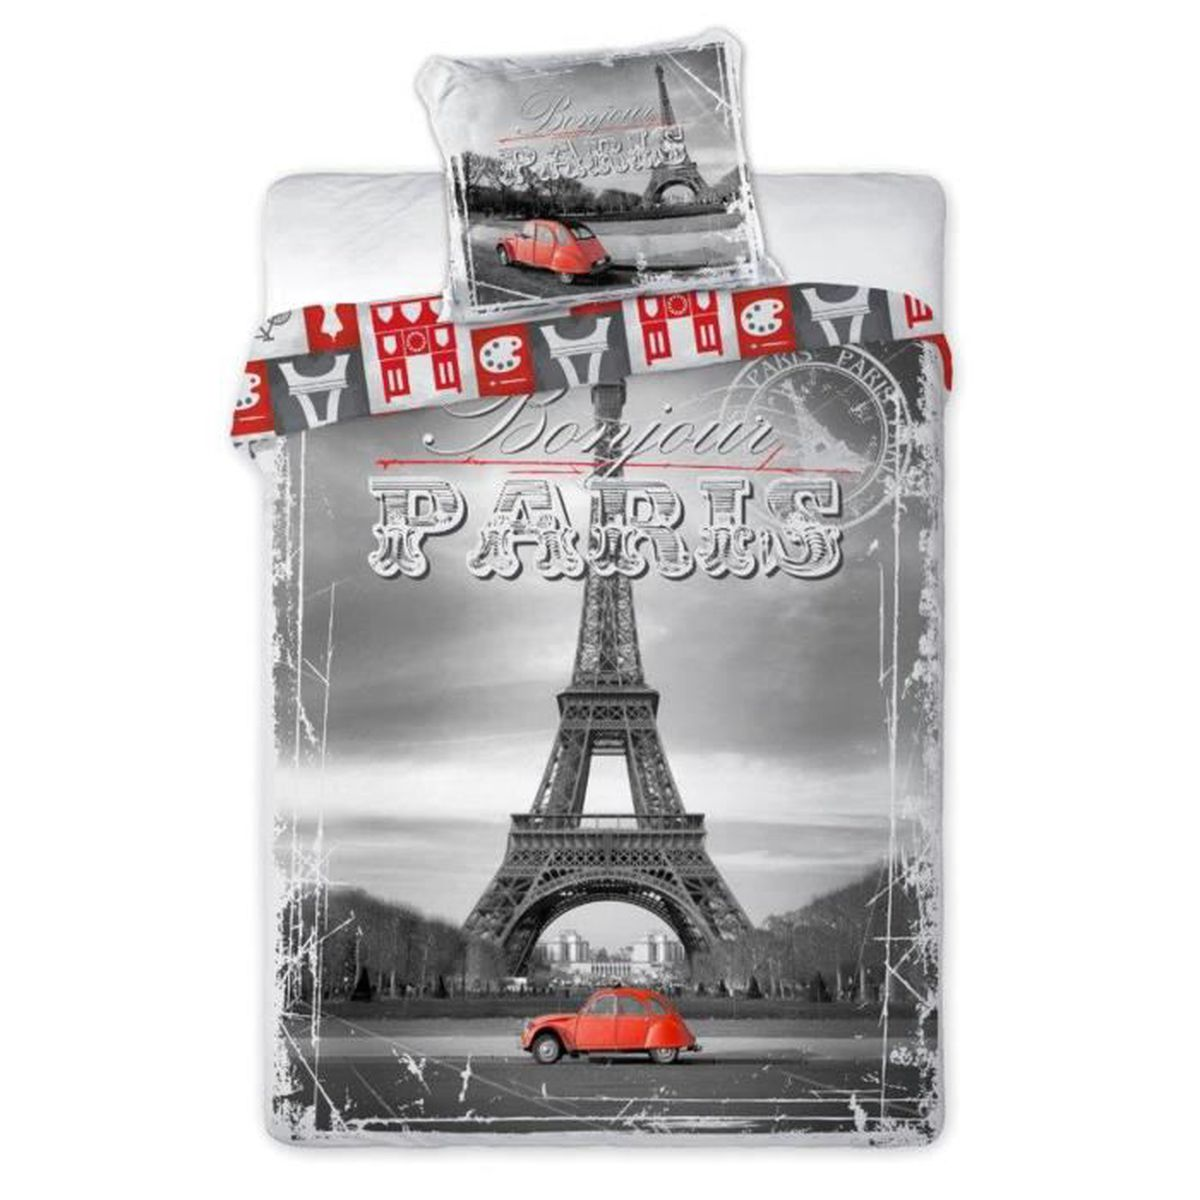 2cv rouge a paris linge de lit housse de couette 140x200 taie 70x90 id e d co tour eiffel 100. Black Bedroom Furniture Sets. Home Design Ideas